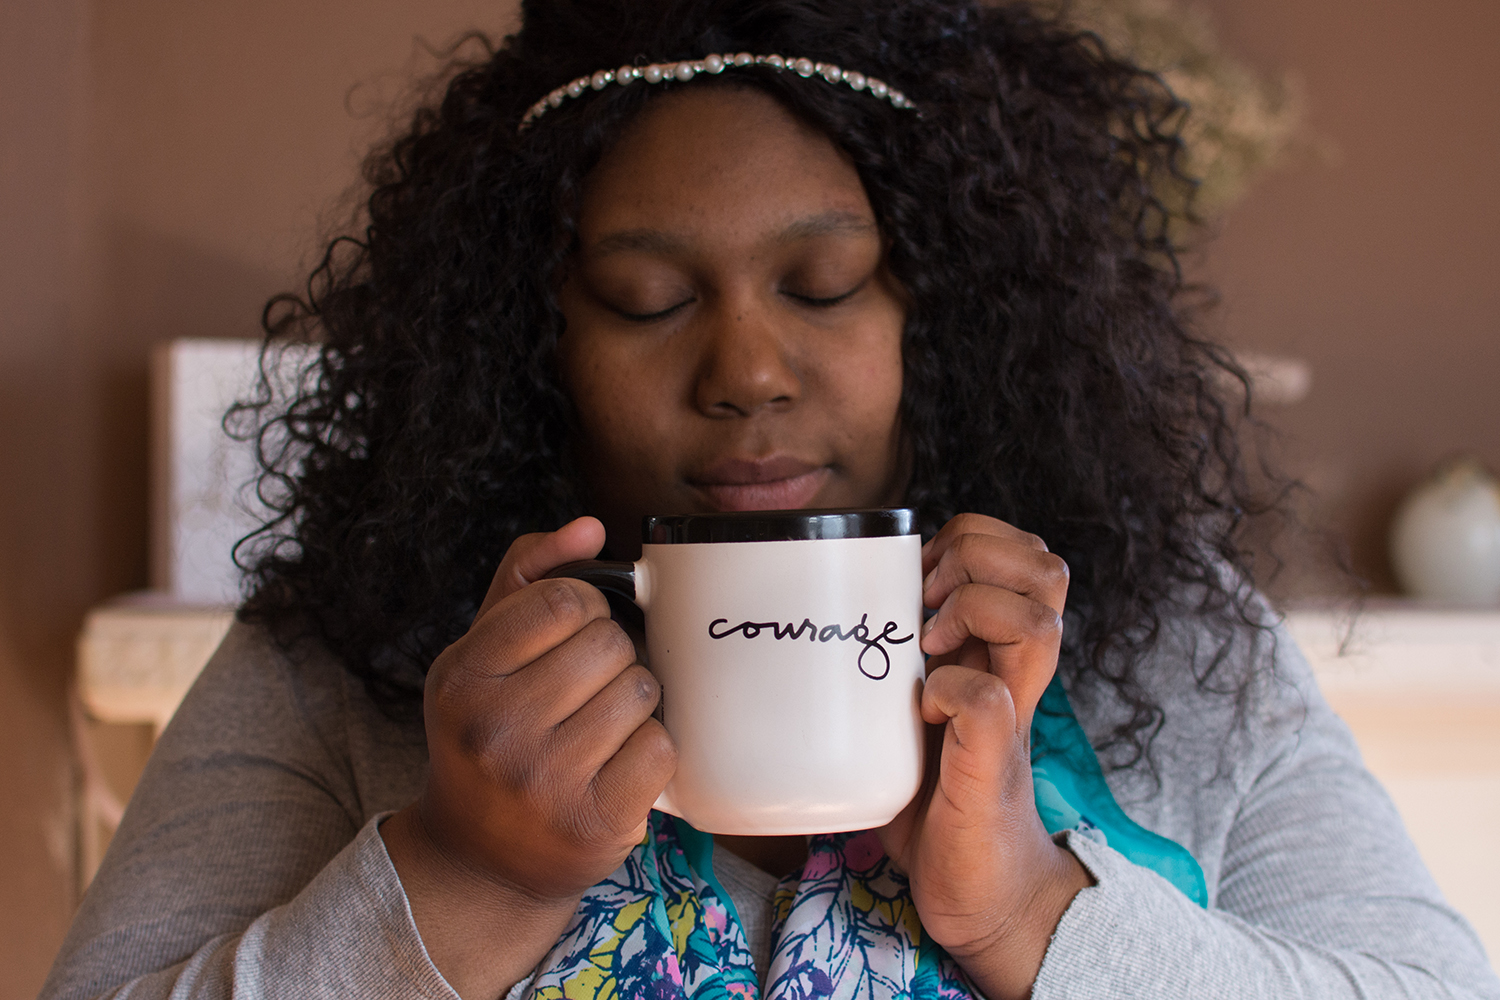 courage coffee cup